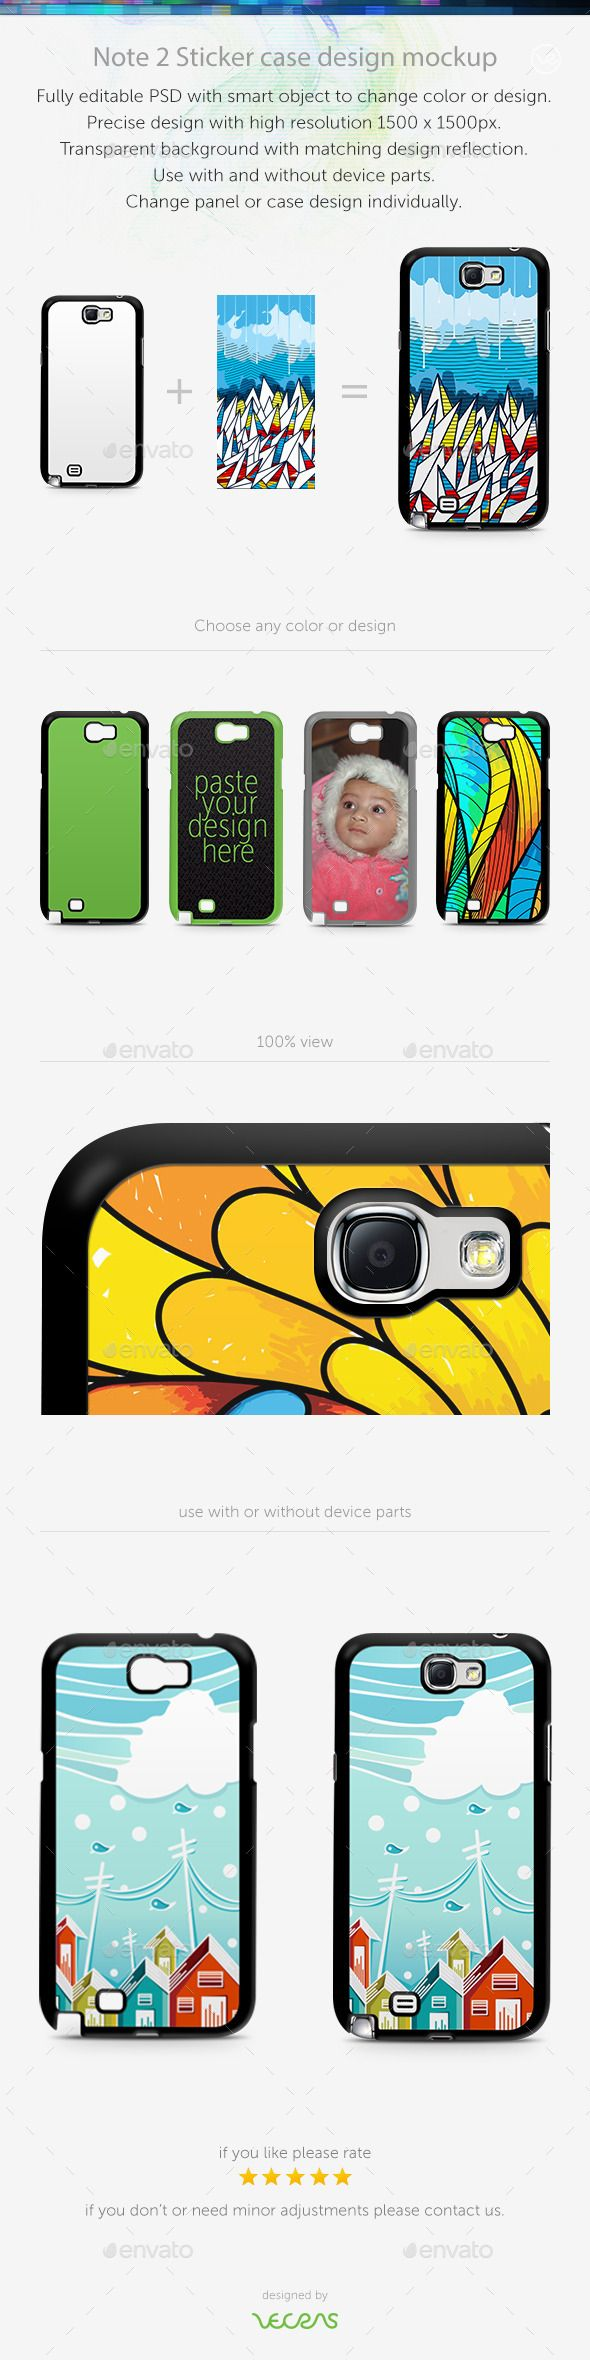 Note 2 Sticker Case Design Mockup — Photoshop PSD #mobile #Samaung Galaxy Note 2 • Available here → https://graphicriver.net/item/note-2-sticker-case-design-mockup/10400934?ref=pxcr